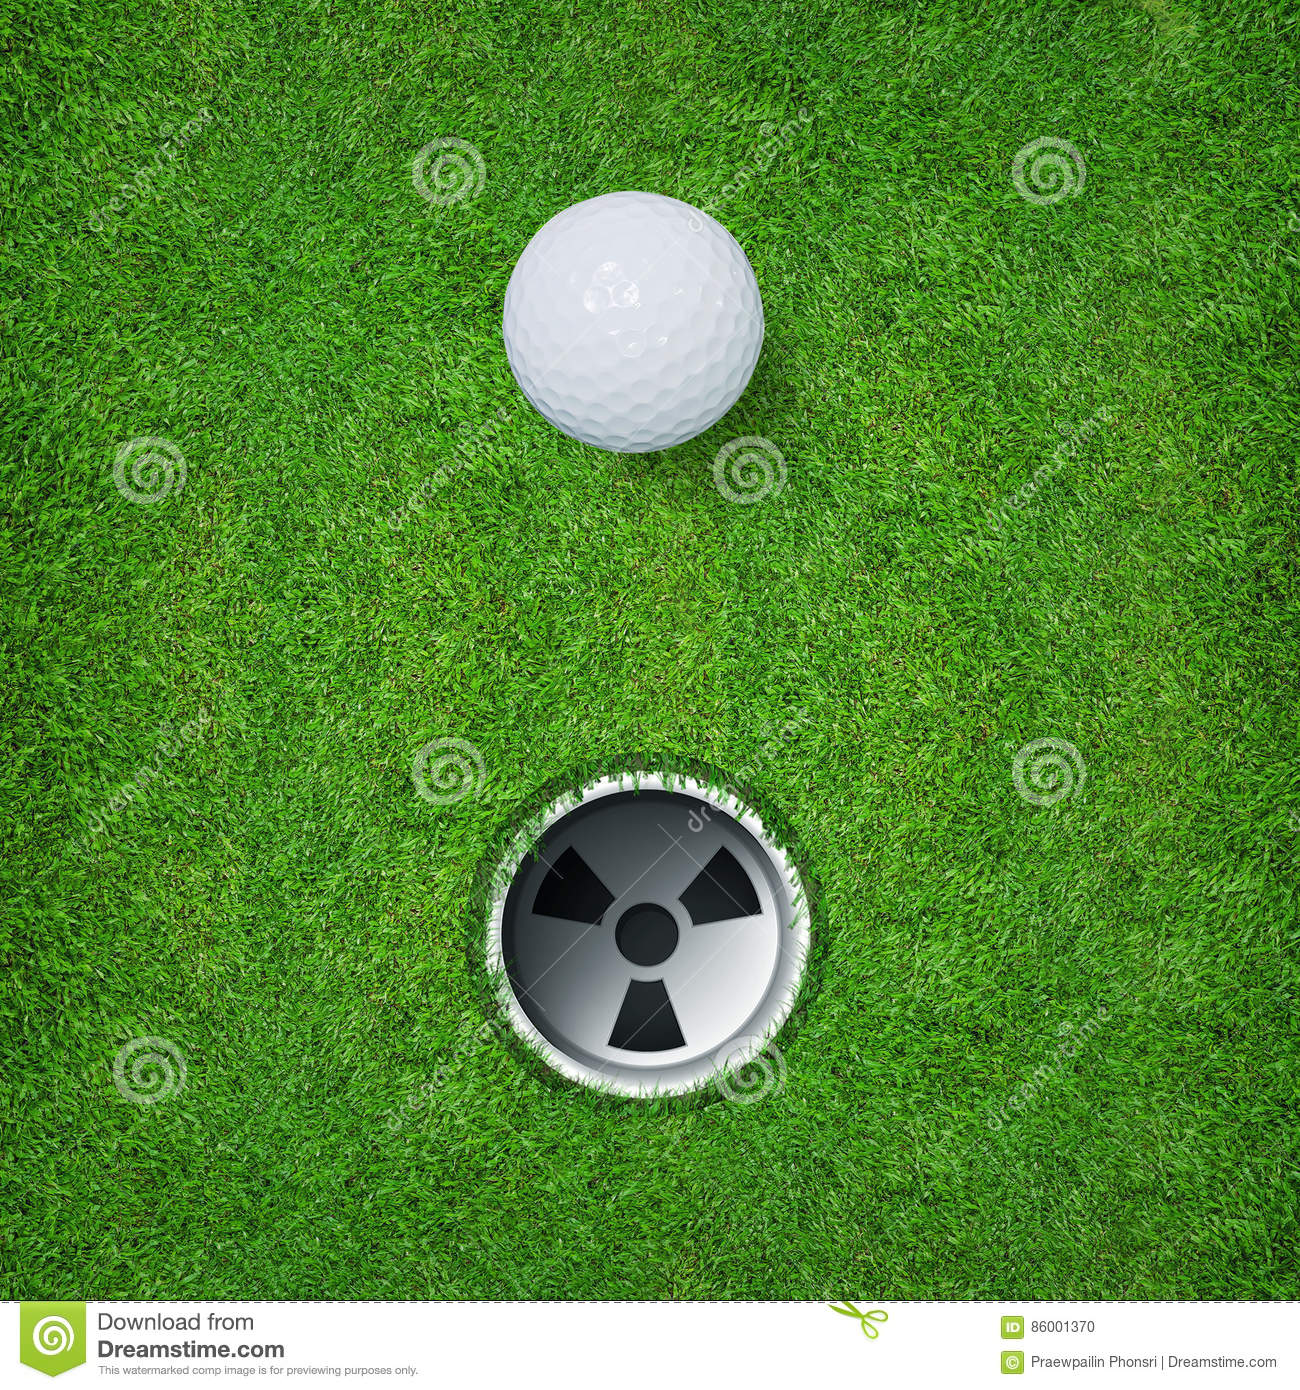 Download Abstract Golf Sport Background Of Golf Ball And Golf Hole On Green Grass Background. Stock Photo - Image of drive, club: 86001370